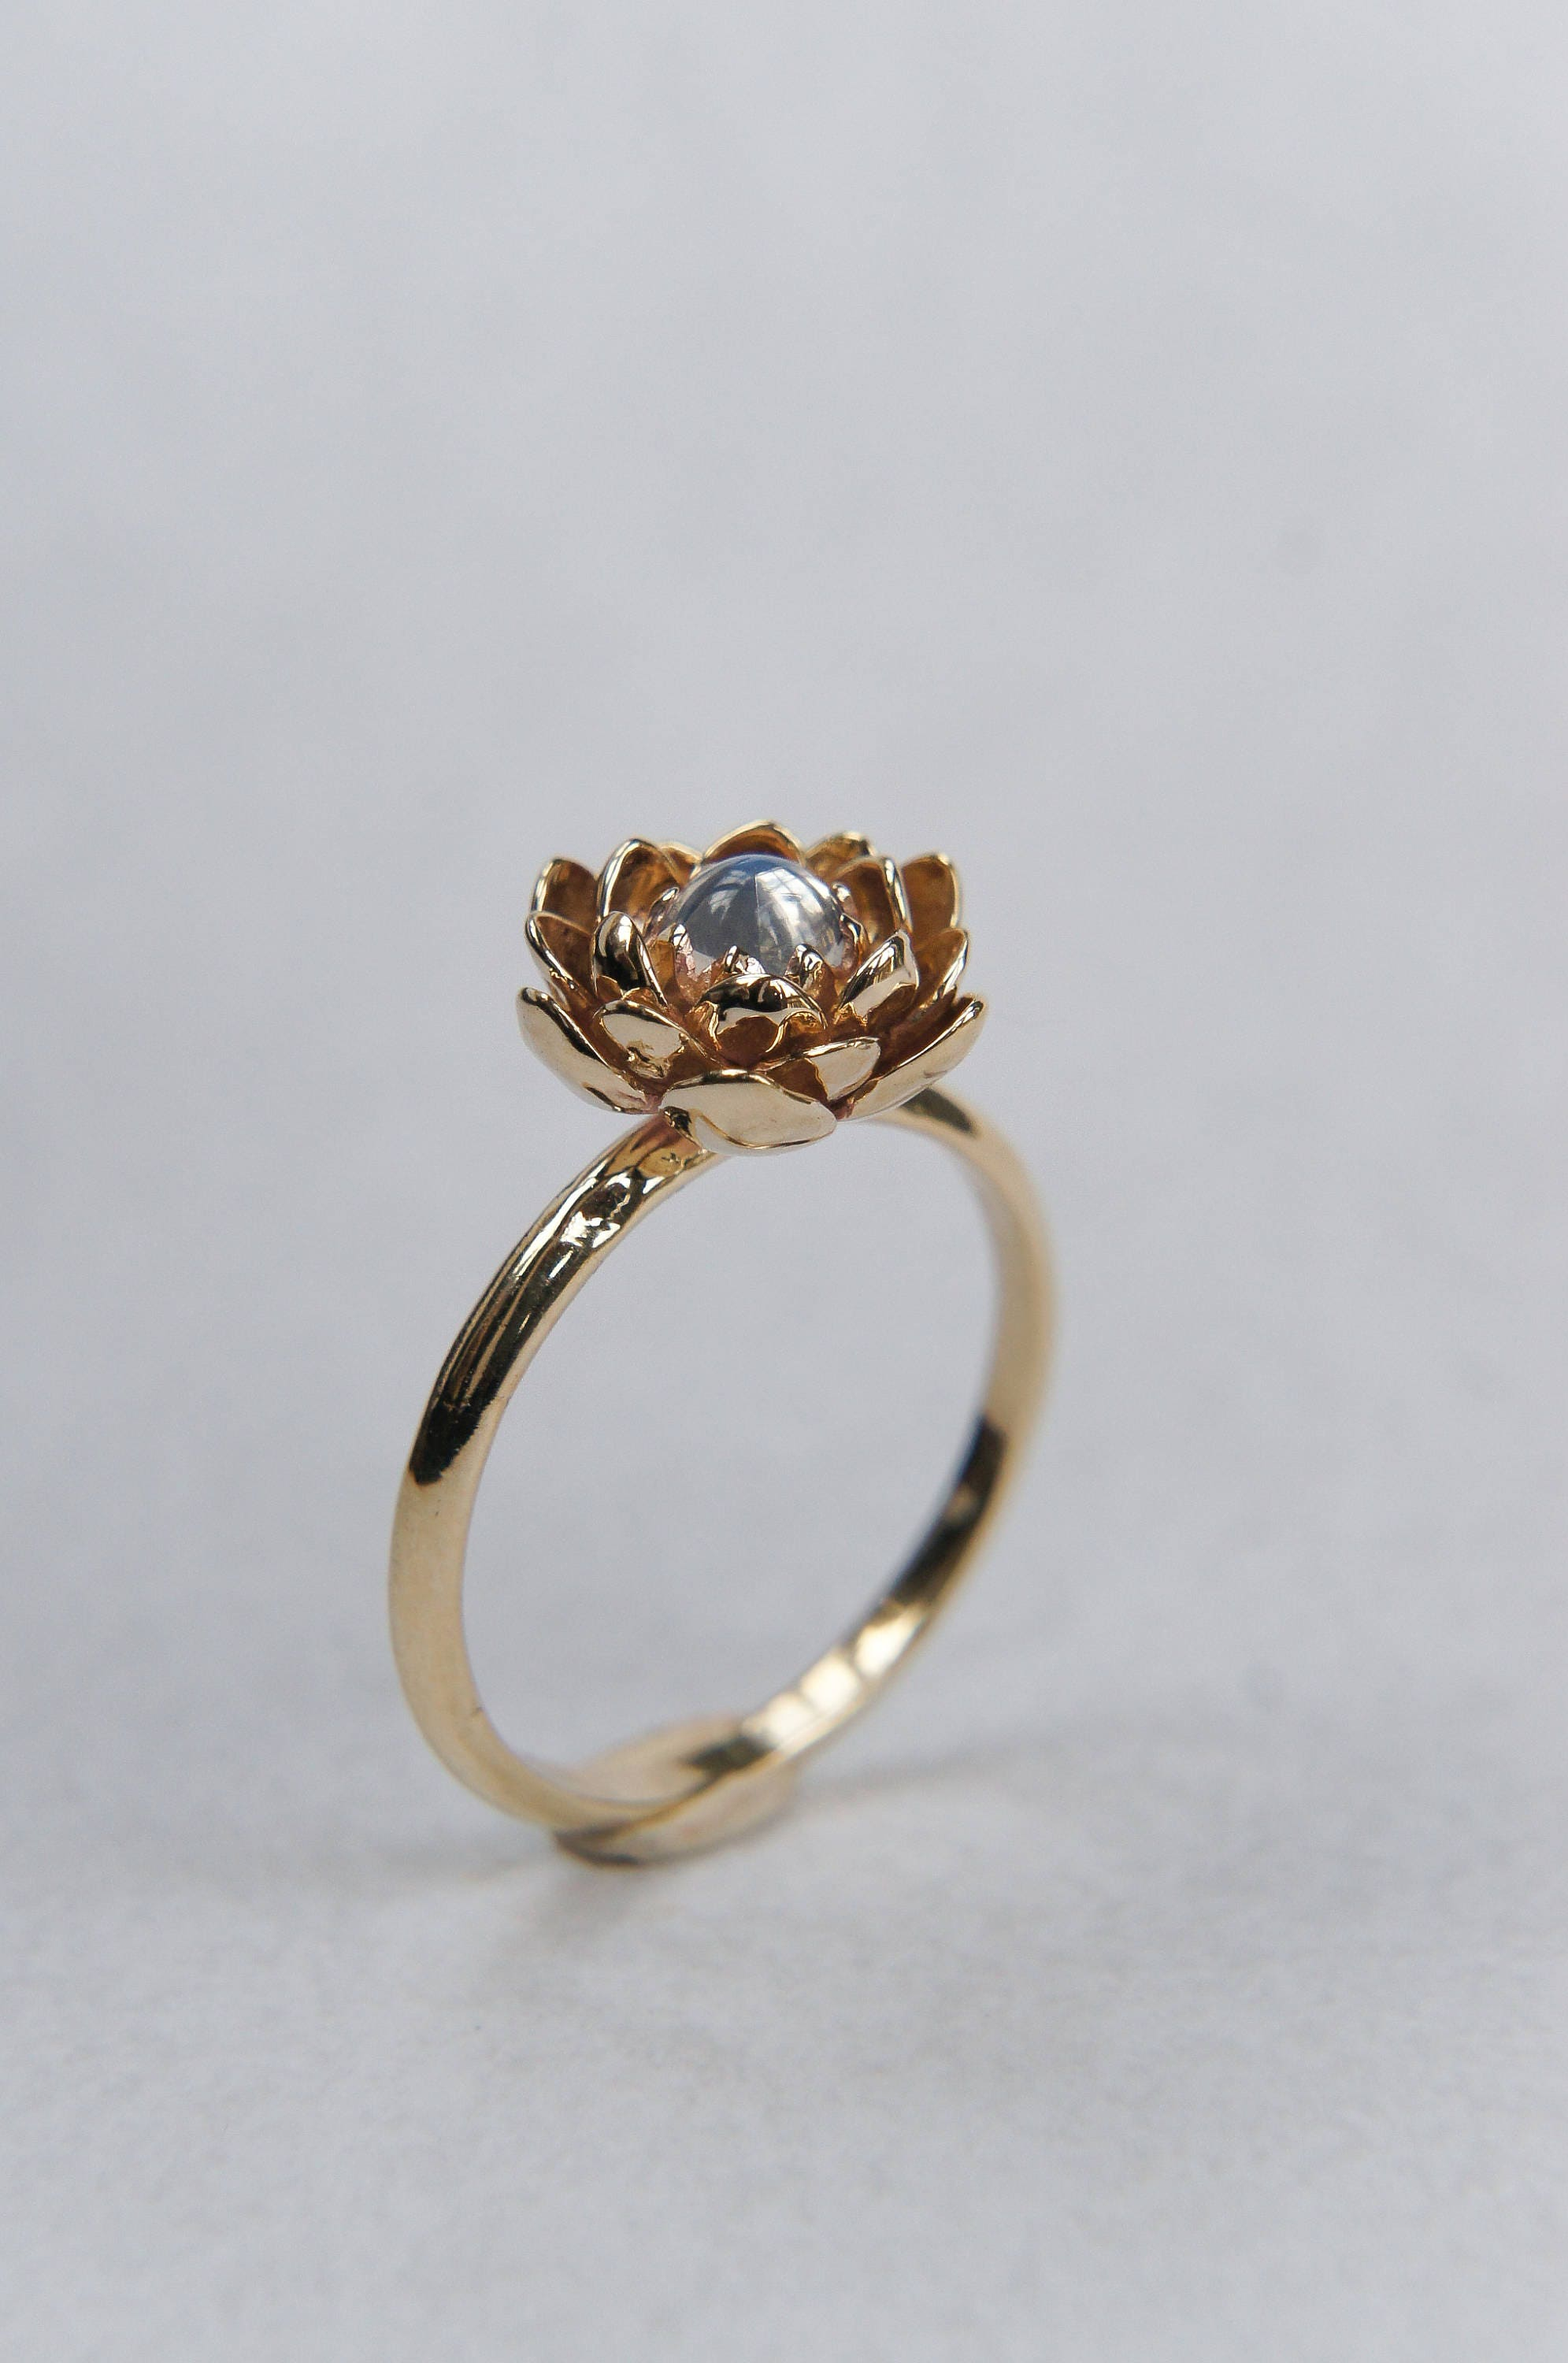 ring rings prongs platinum engagement lotus purejewels product sku six